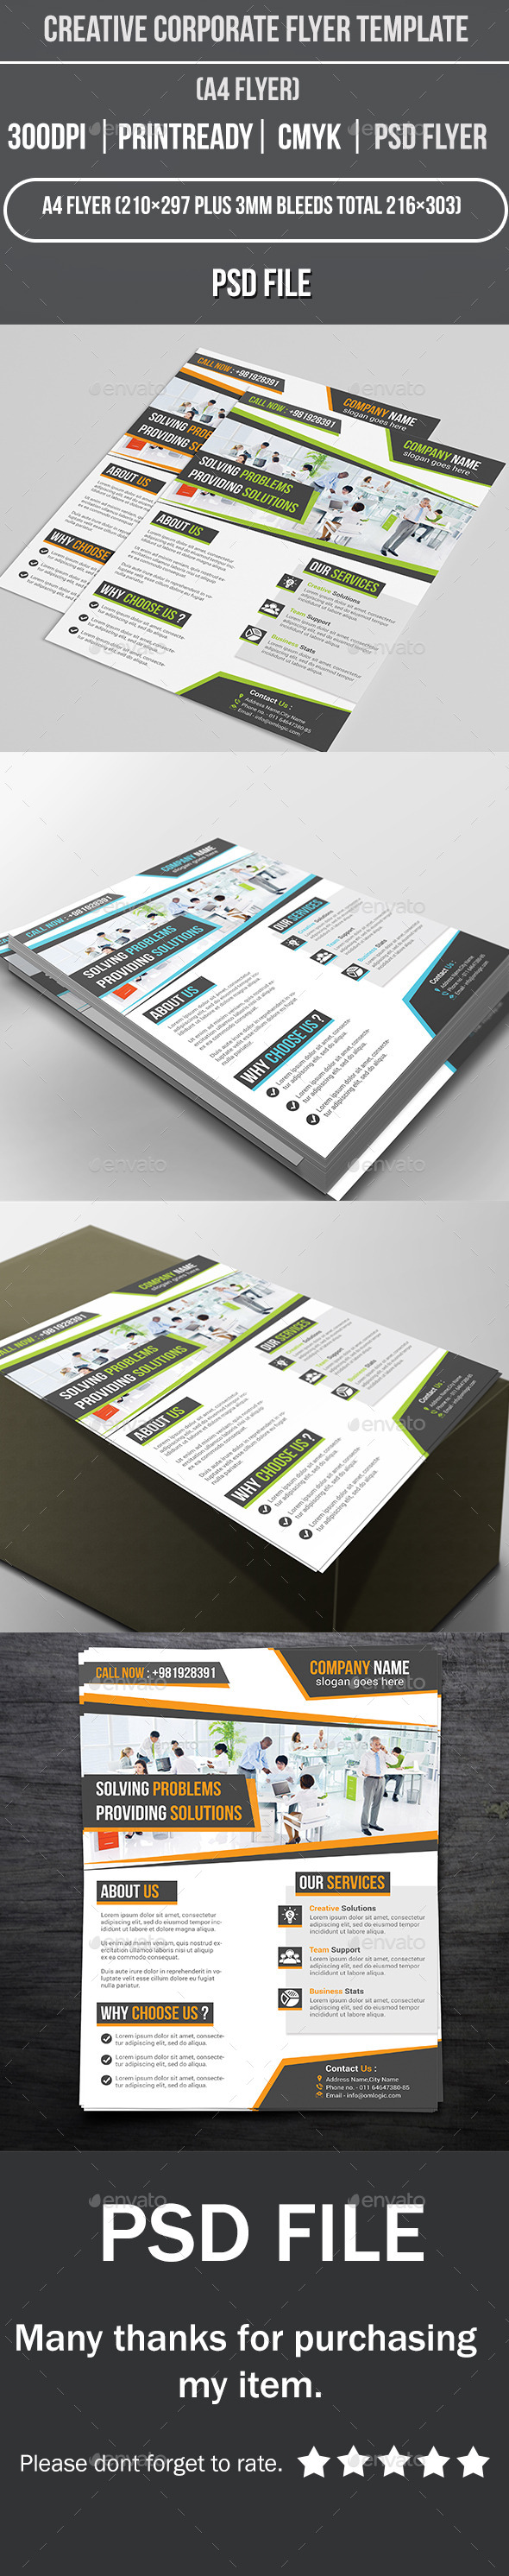 GraphicRiver Creative Corporate Flyer Template 10981502